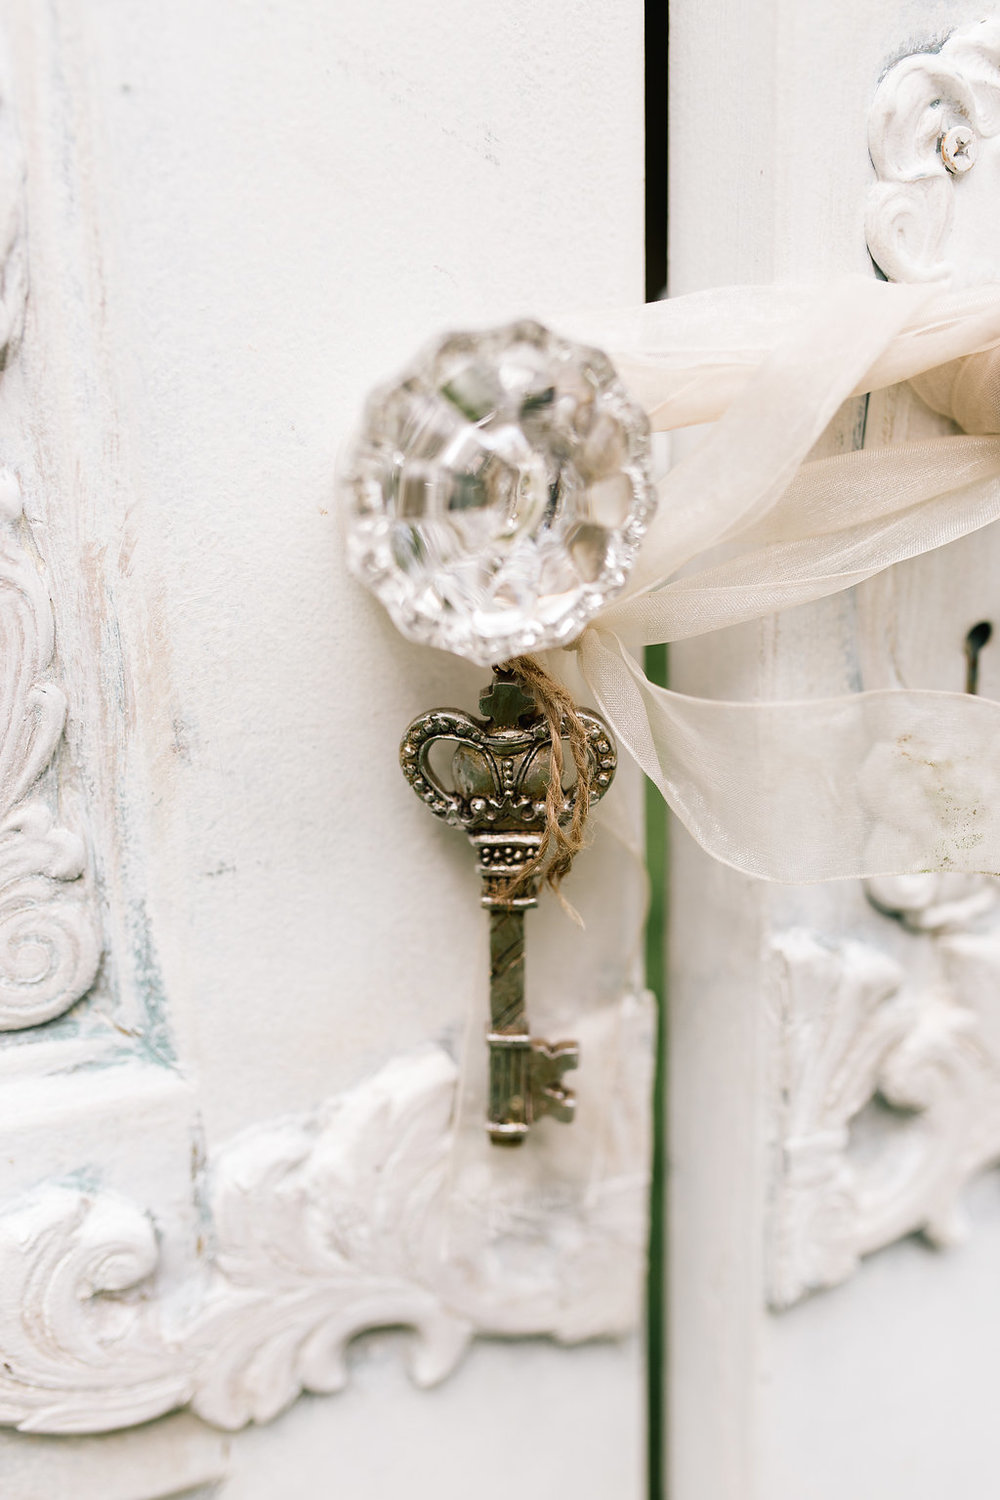 wedding ceremony doors with a key | A Vintage Touch Weddings | Sixpence Events day of coordinating | photo by Allison Hopperstad